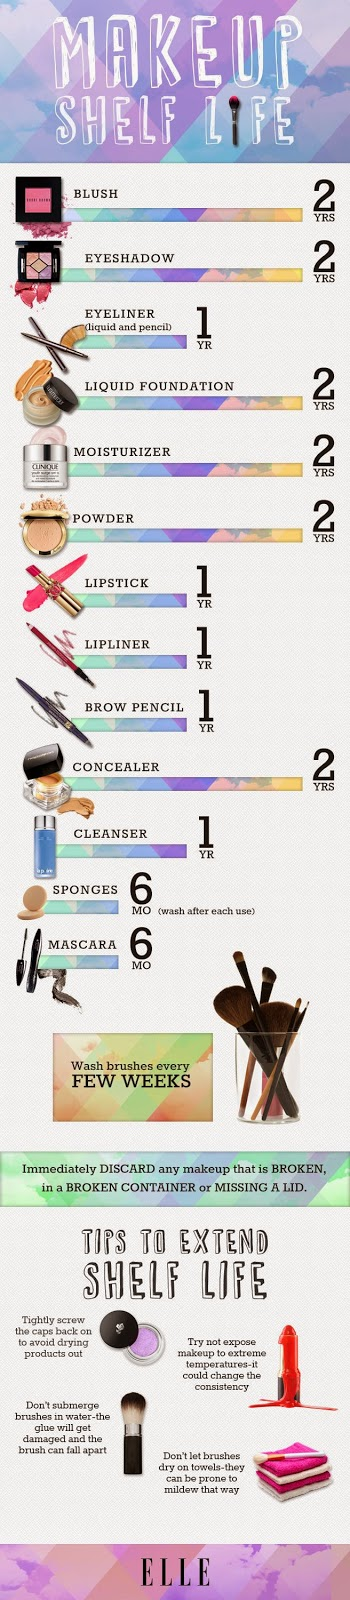 makeup shelf life chart